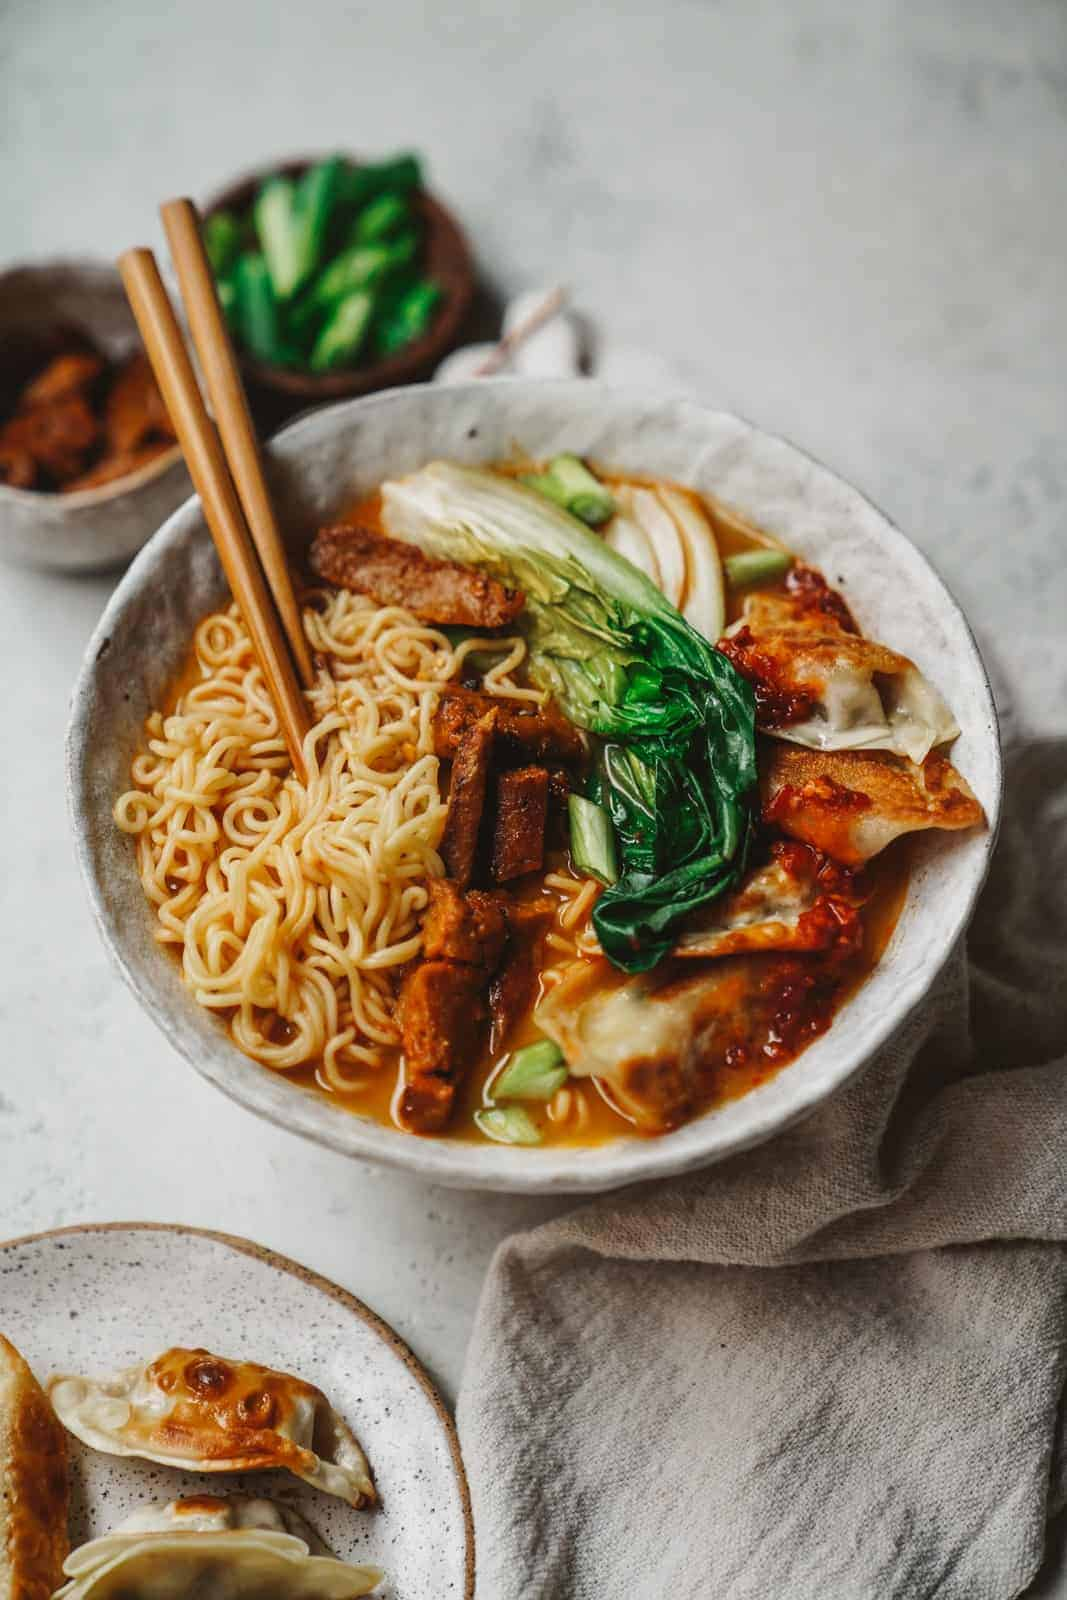 Vegan Ramen that is easy-to-make and loaded with flavour, sitting on counter ready to eat